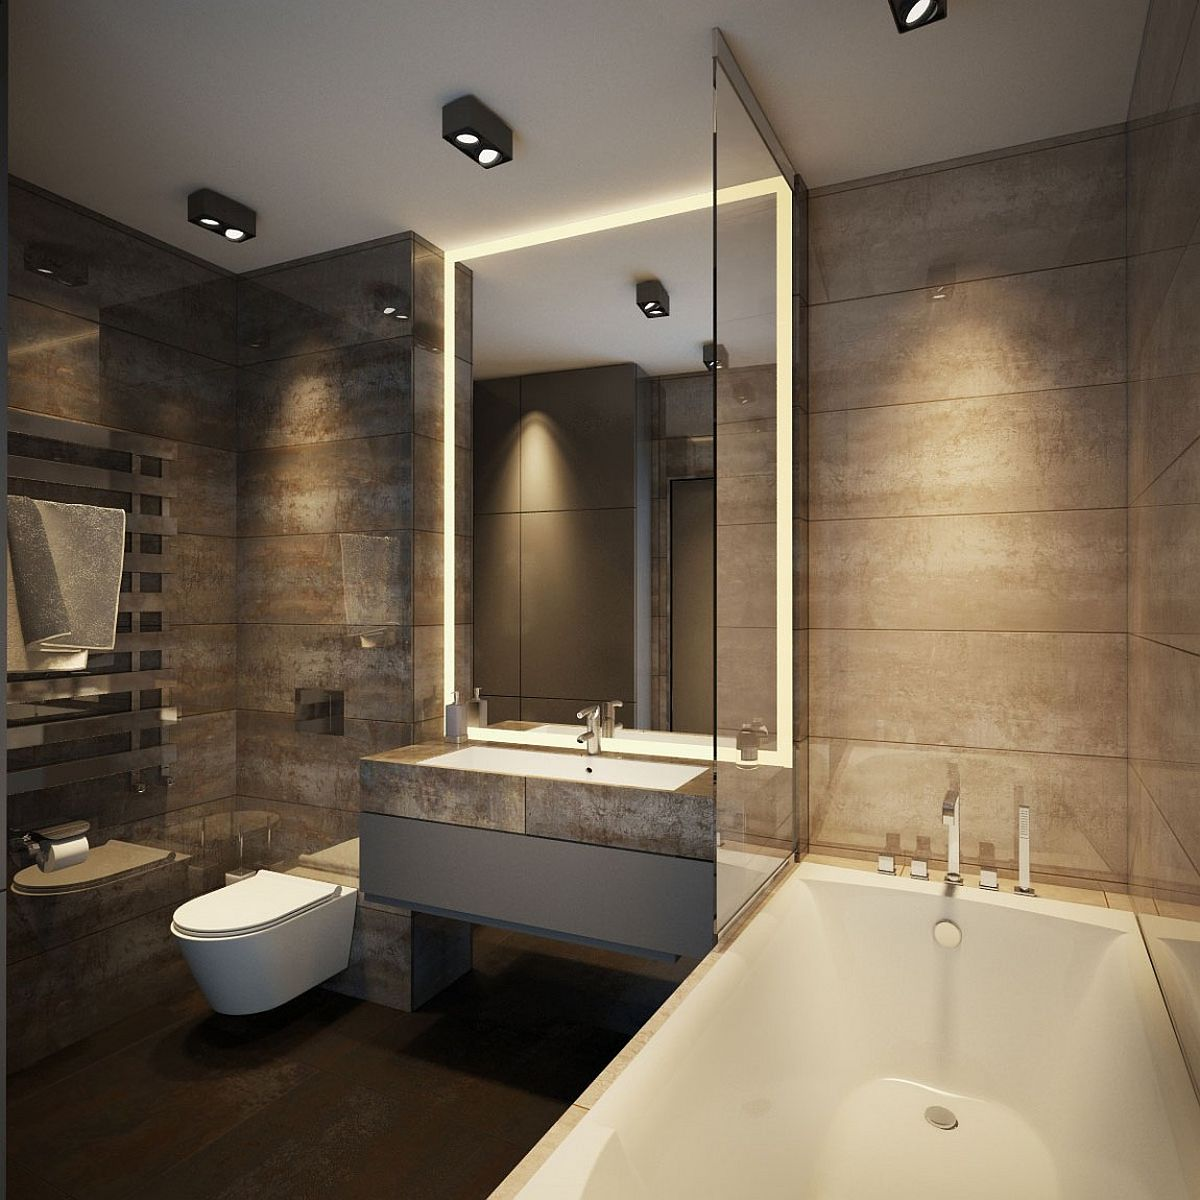 Apartment ernst in kiev inspired by posh hotel ambiance for Bathroom layout ideas